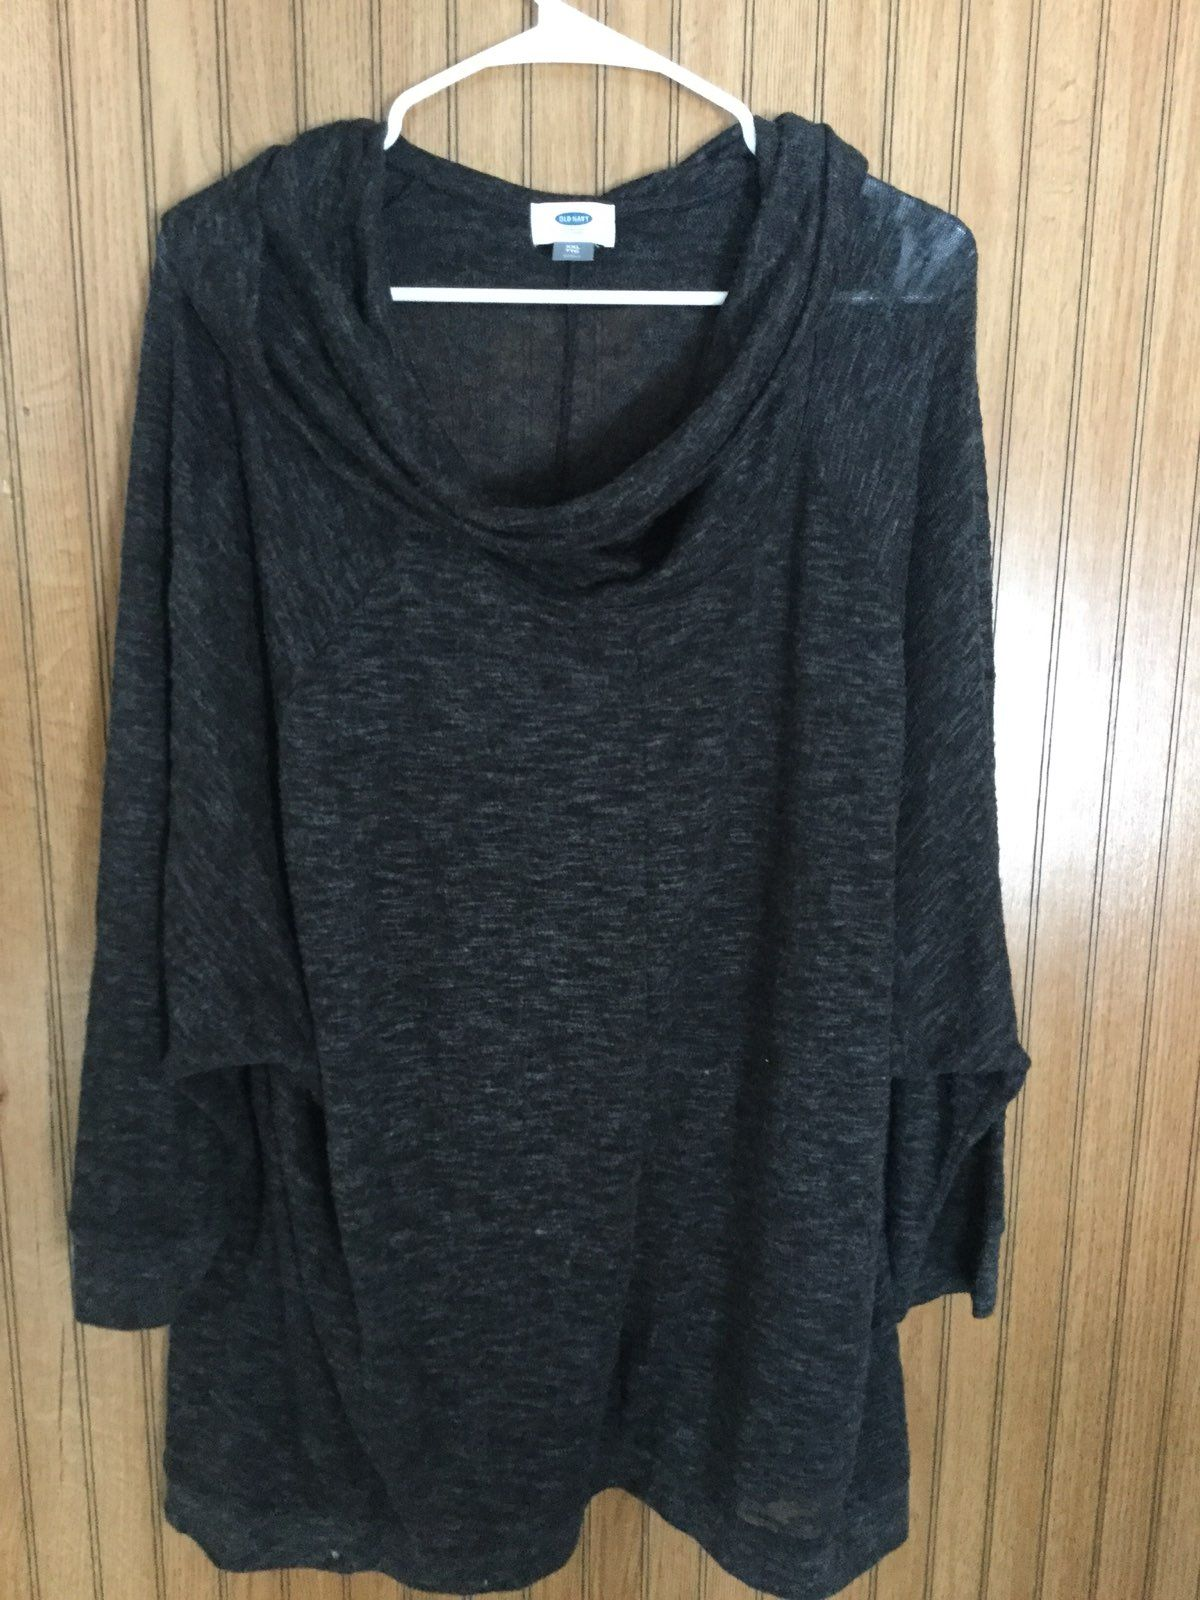 Old Navy Thin Cowl Neck Sweater - Mercari: BUY & SELL THINGS YOU LOVE